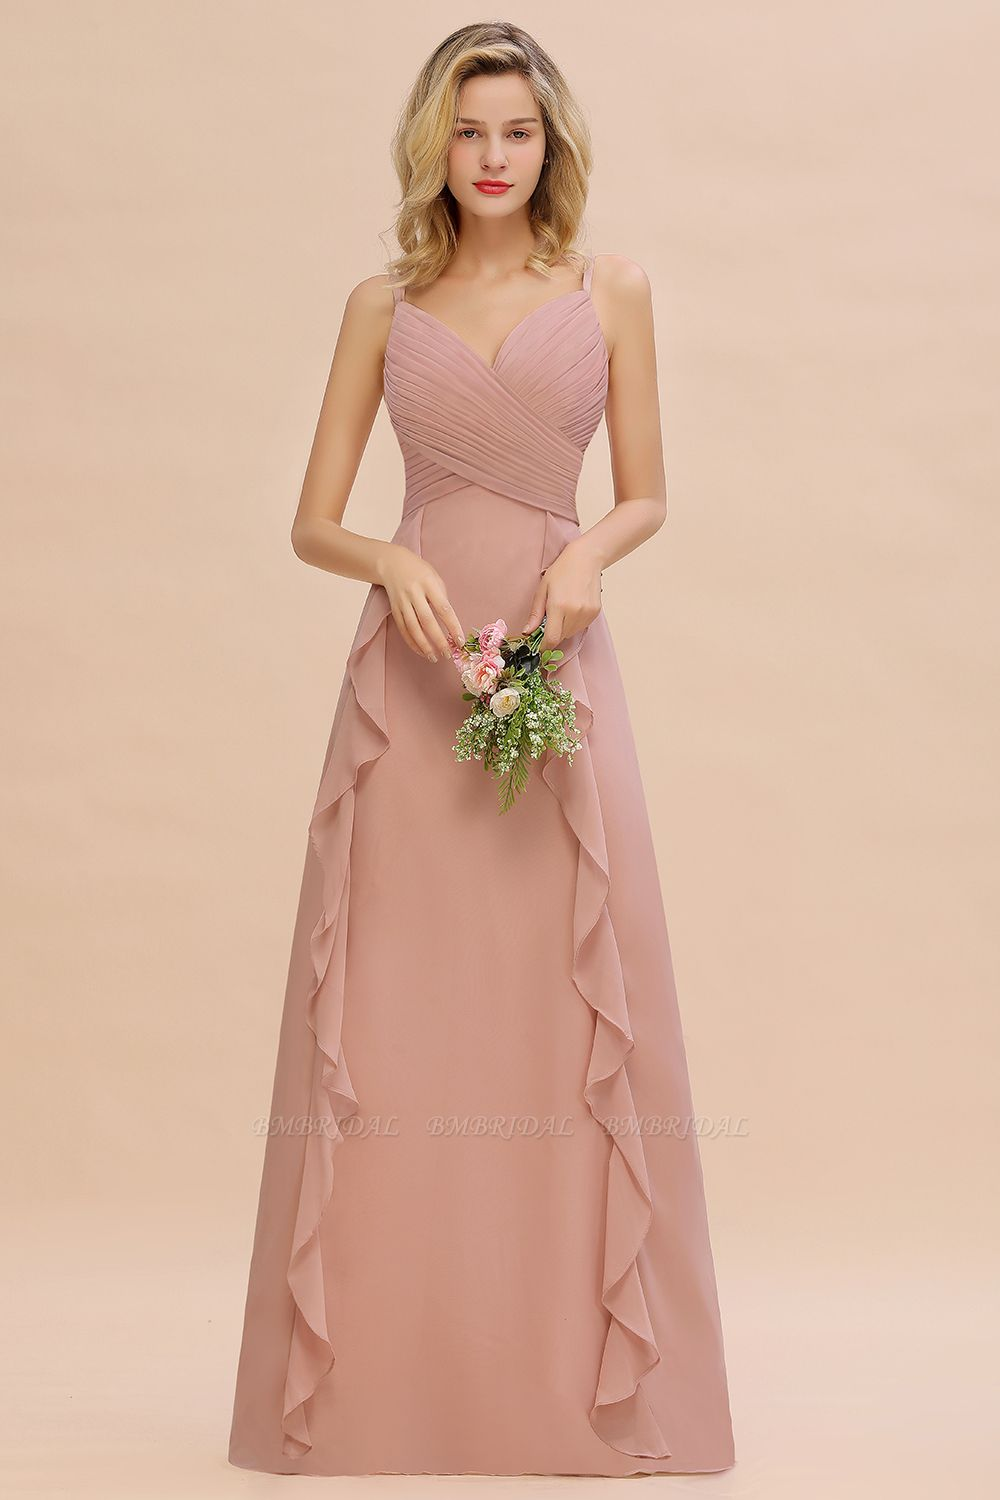 BMbridal Chiffon Long Sleeveless Bridesmaid Dress with Cascading Ruffles